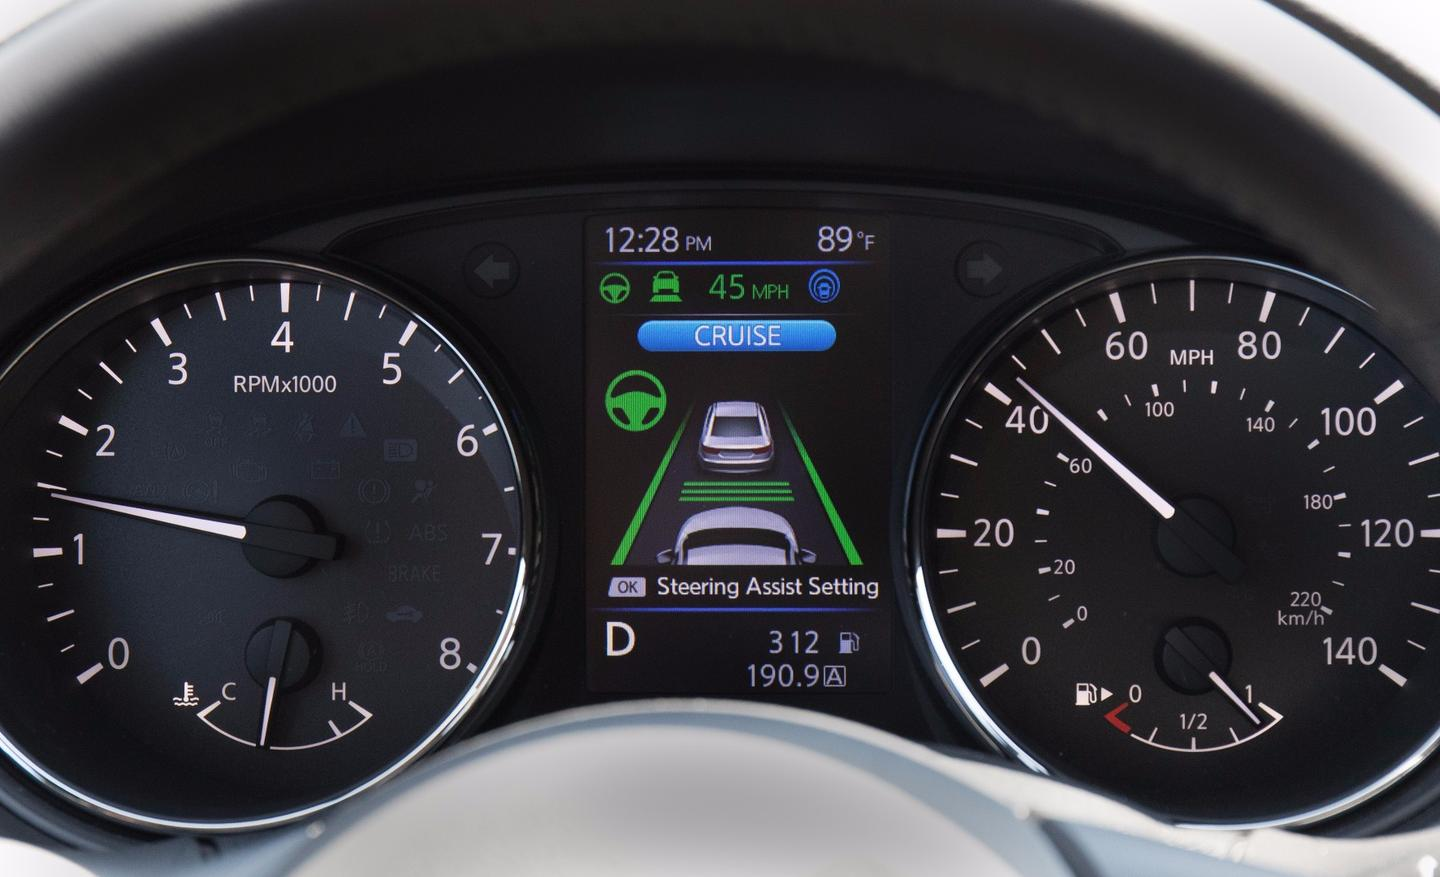 ProPILOT Assist is a natural extension of the already-common adaptive cruise control found in many vehicles today